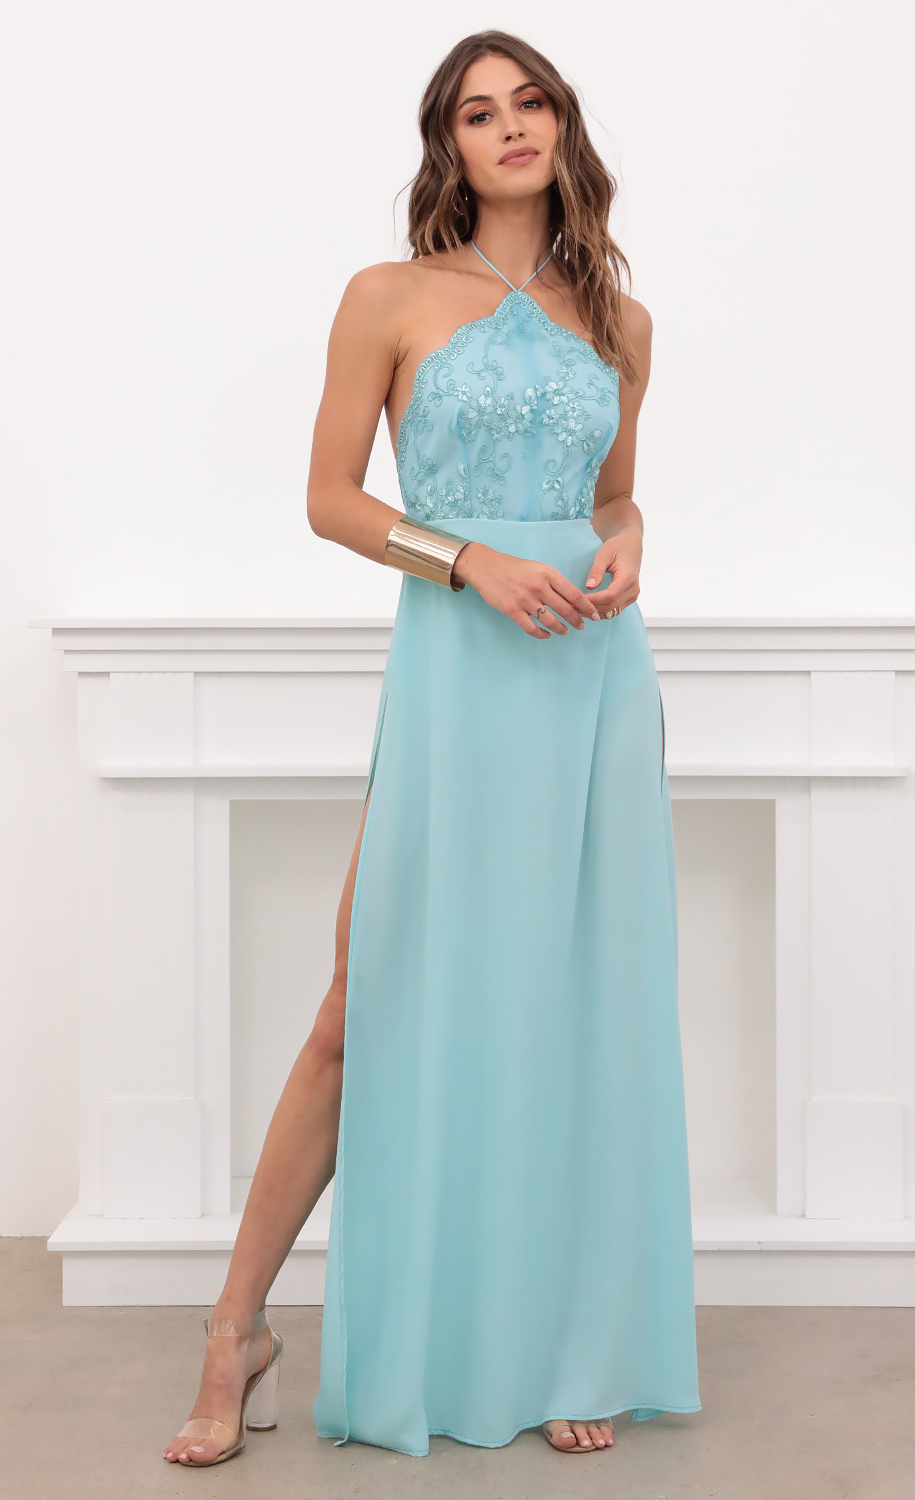 Coralynn Halter Lace Dress in Aqua